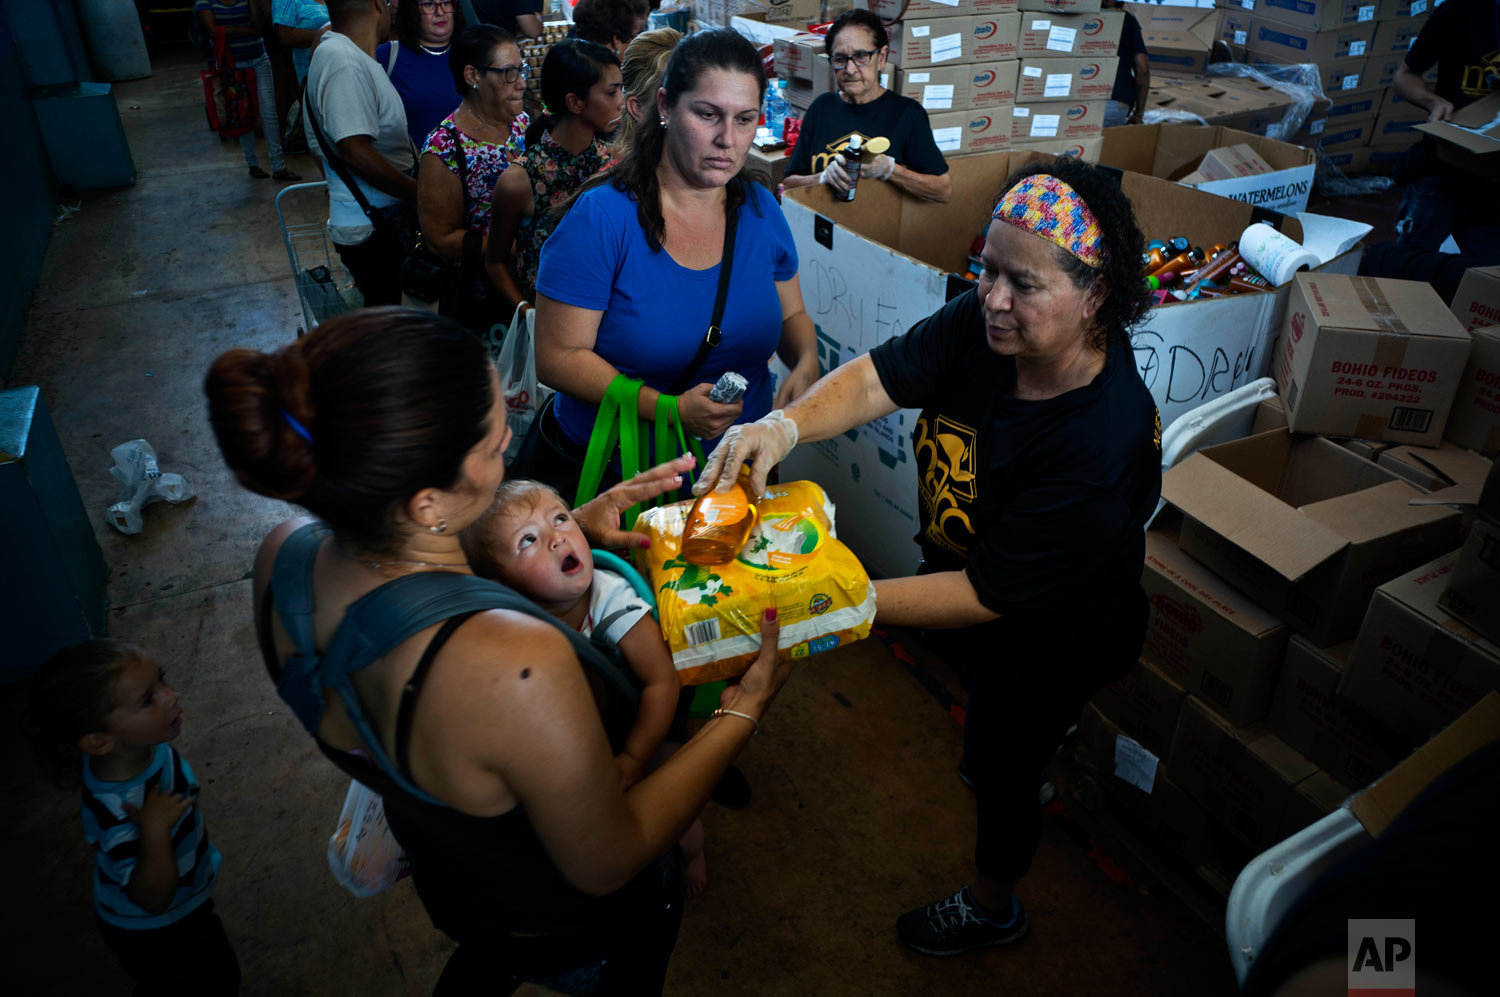 A woman receives free diapers and shower gel from the charity MARC Ministry. Sept. 7, 2018. (AP Photo/Ramon Espinosa)